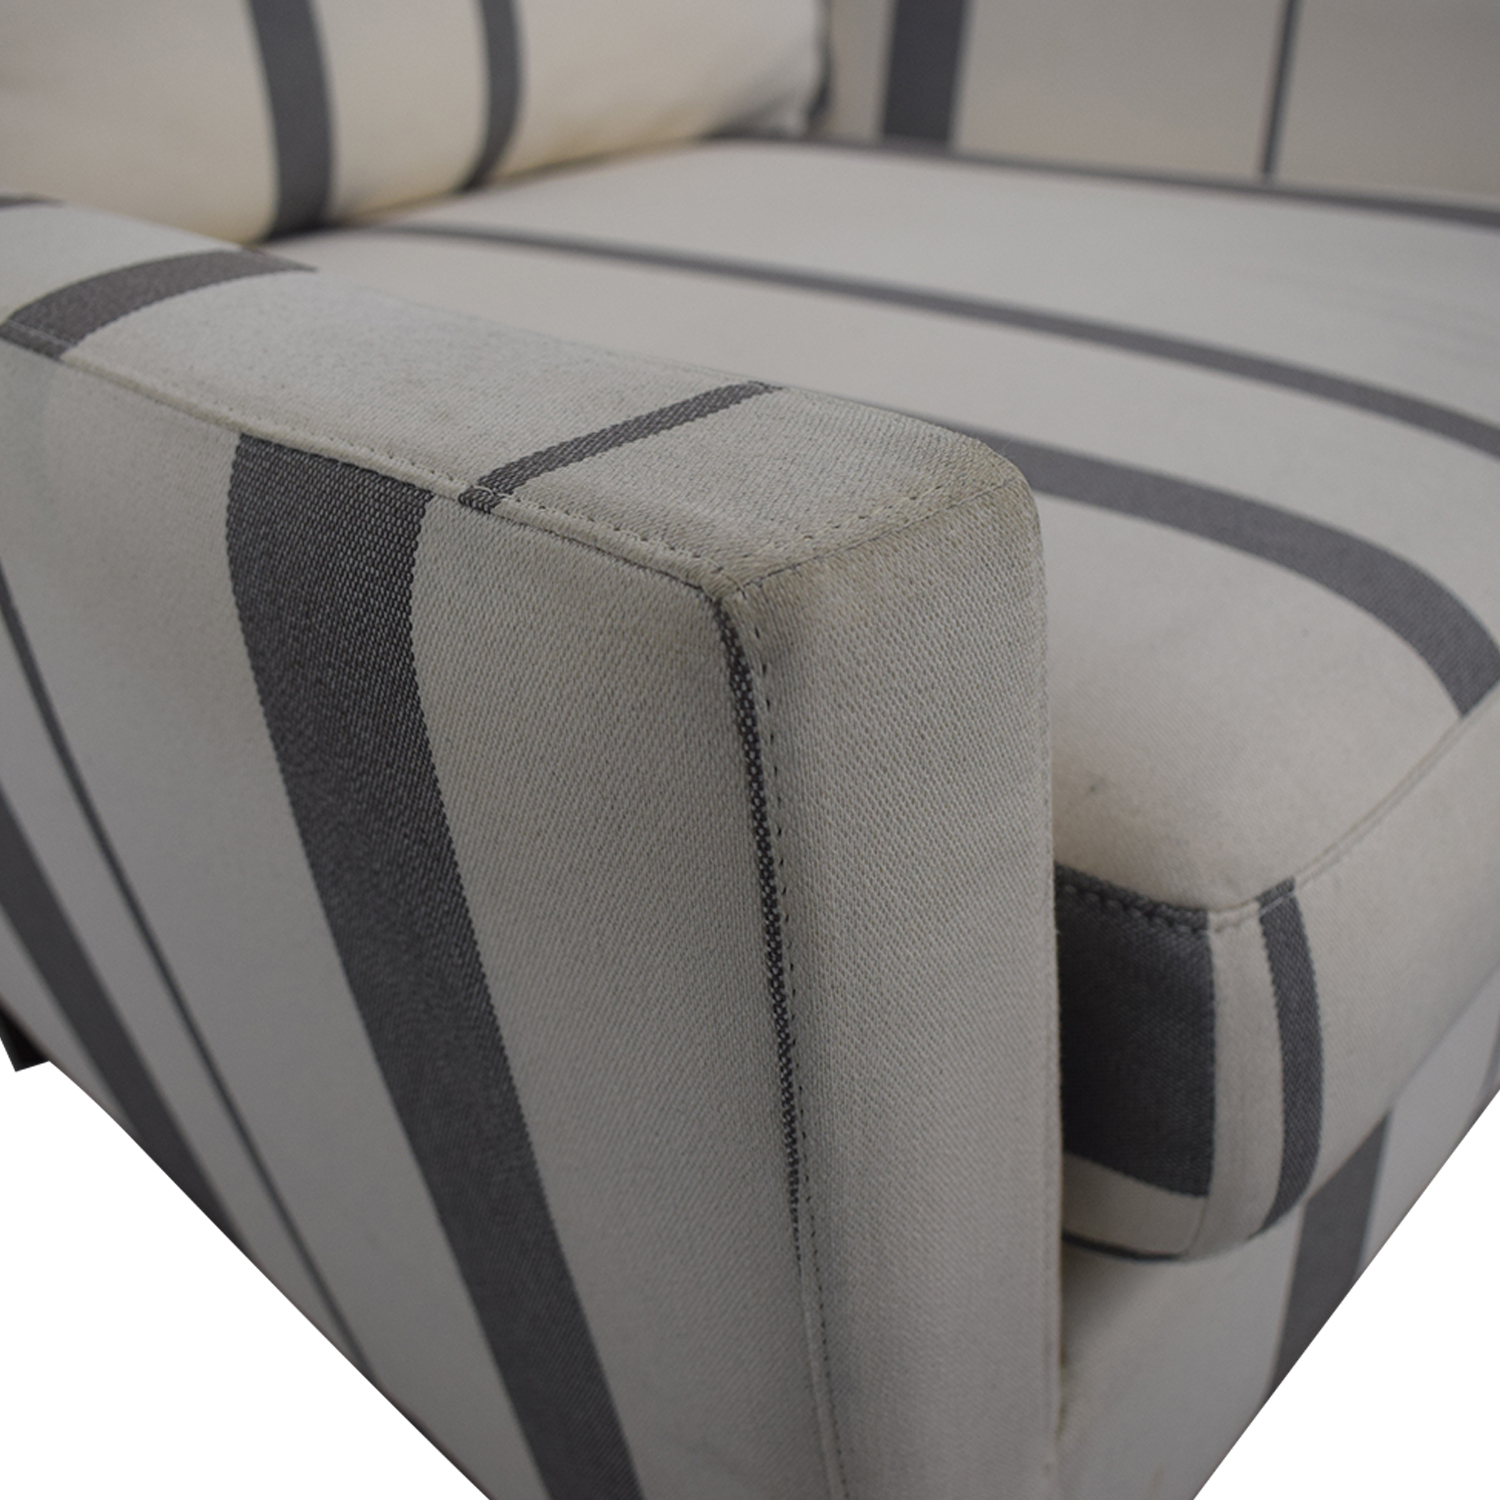 West Elm West Elm Everett Grey and White Striped Accent Chair used